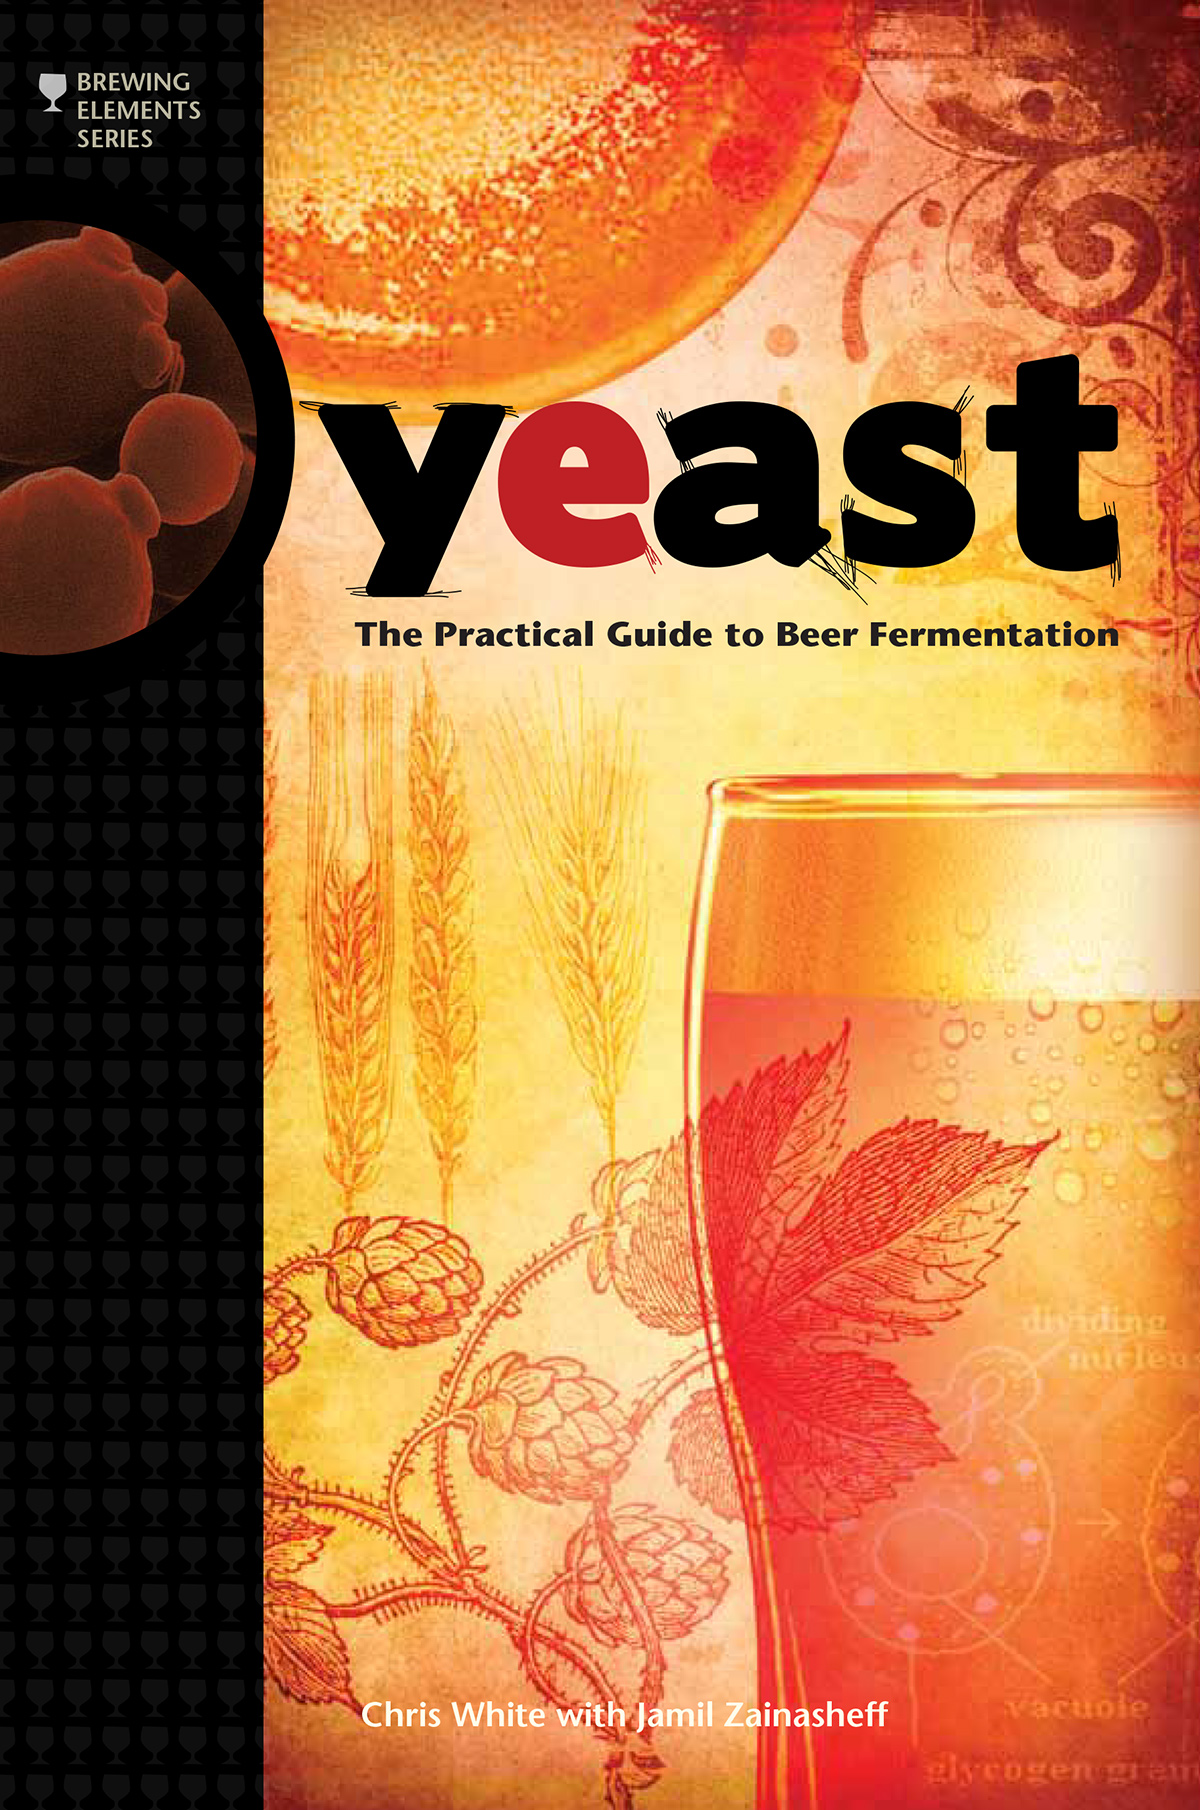 <strong>Yeast</strong><br><em>The Practical Guide to Beer Fermentation</em><br>Brewing Elements Series Book Cover